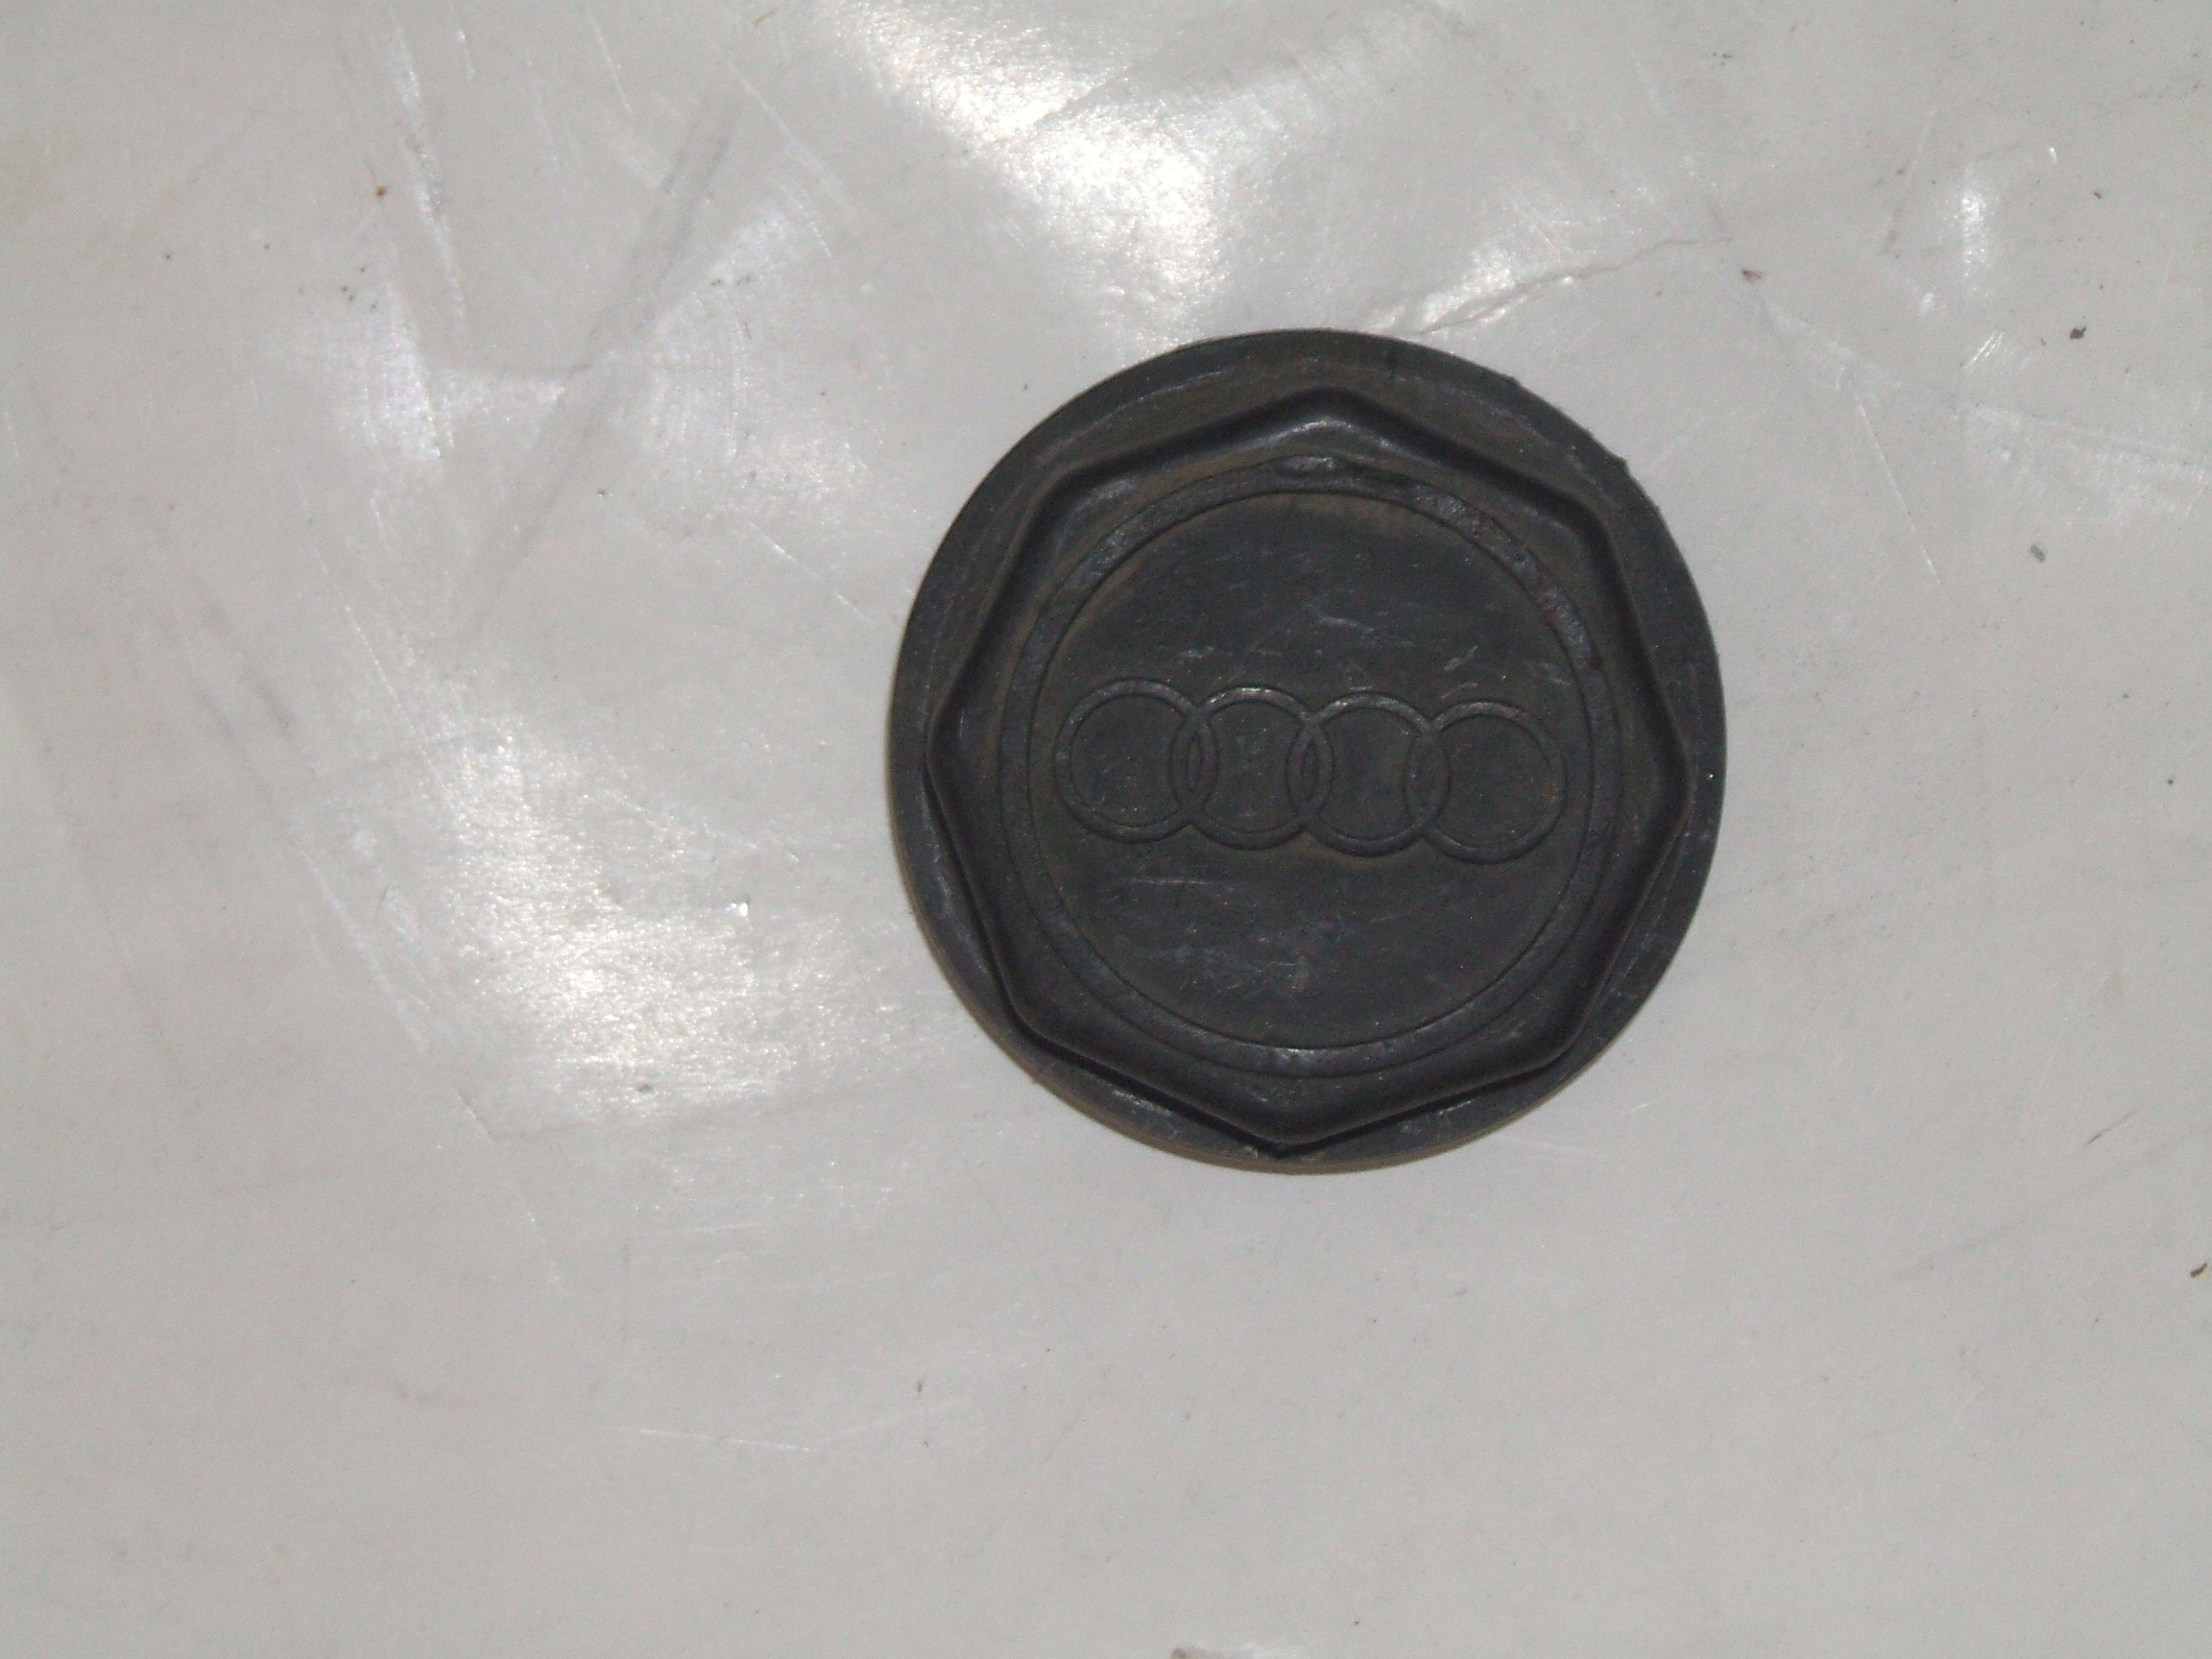 "Audi 200 5000 Quattro 83-91 14"" 15"" Wheel Center Cap 58635 P/N 841601165"